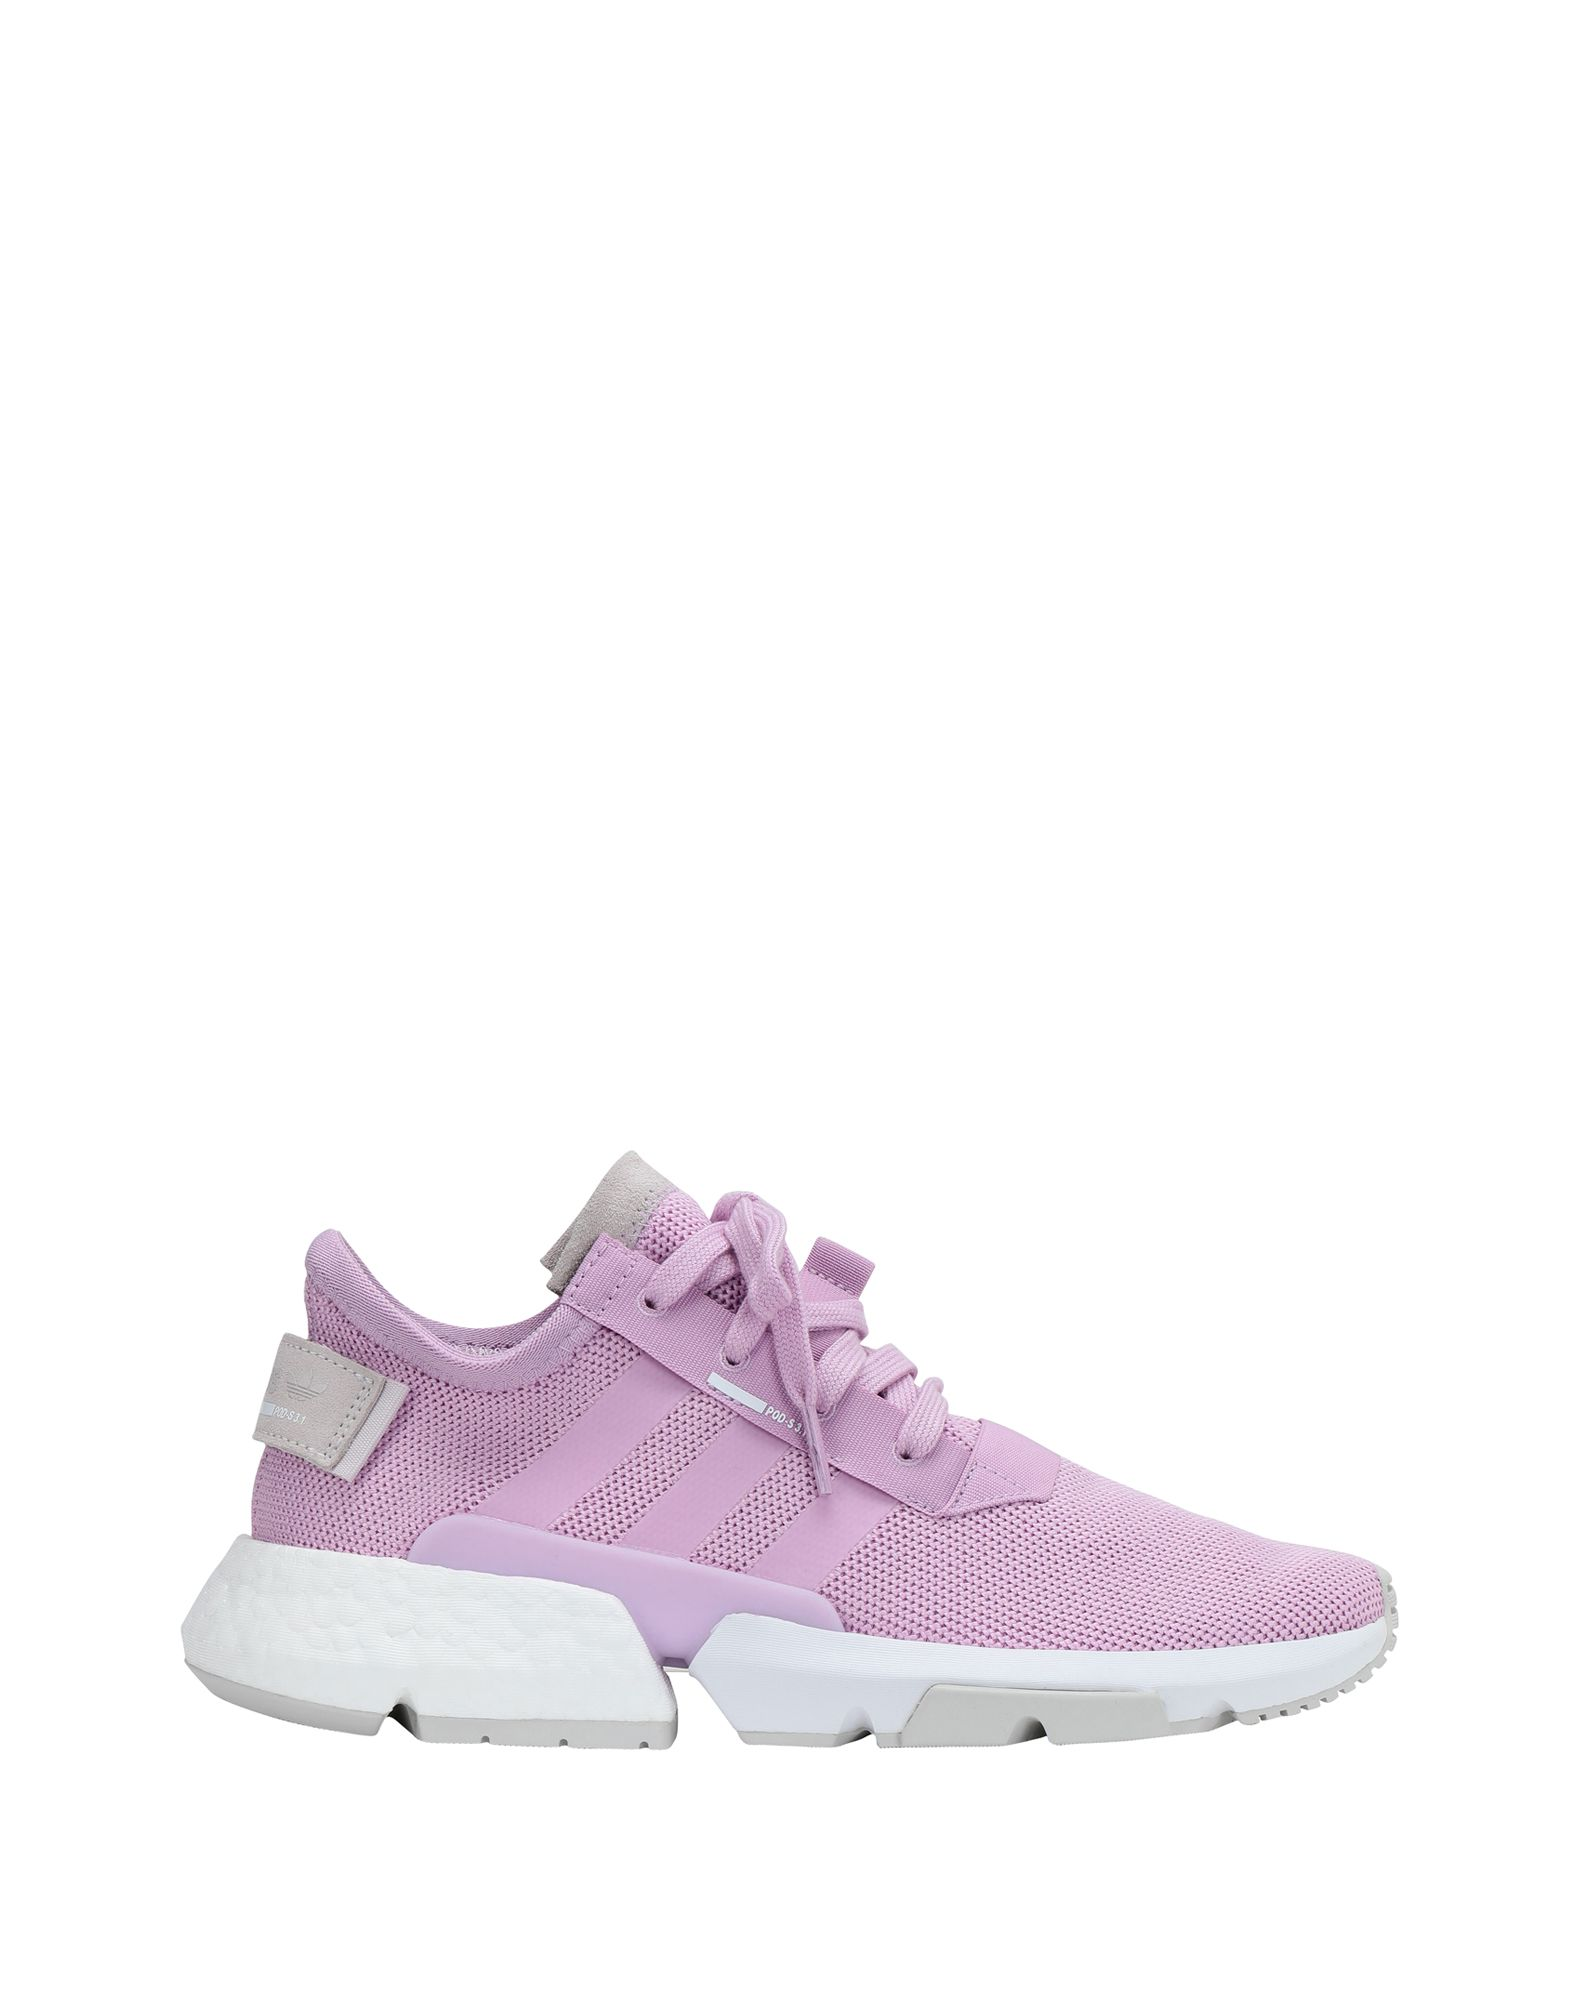 Adidas Originals Pod-S3.1 W - Sneakers Sneakers - Women Adidas Originals Sneakers Sneakers online on  United Kingdom - 11565713IM 5f776f